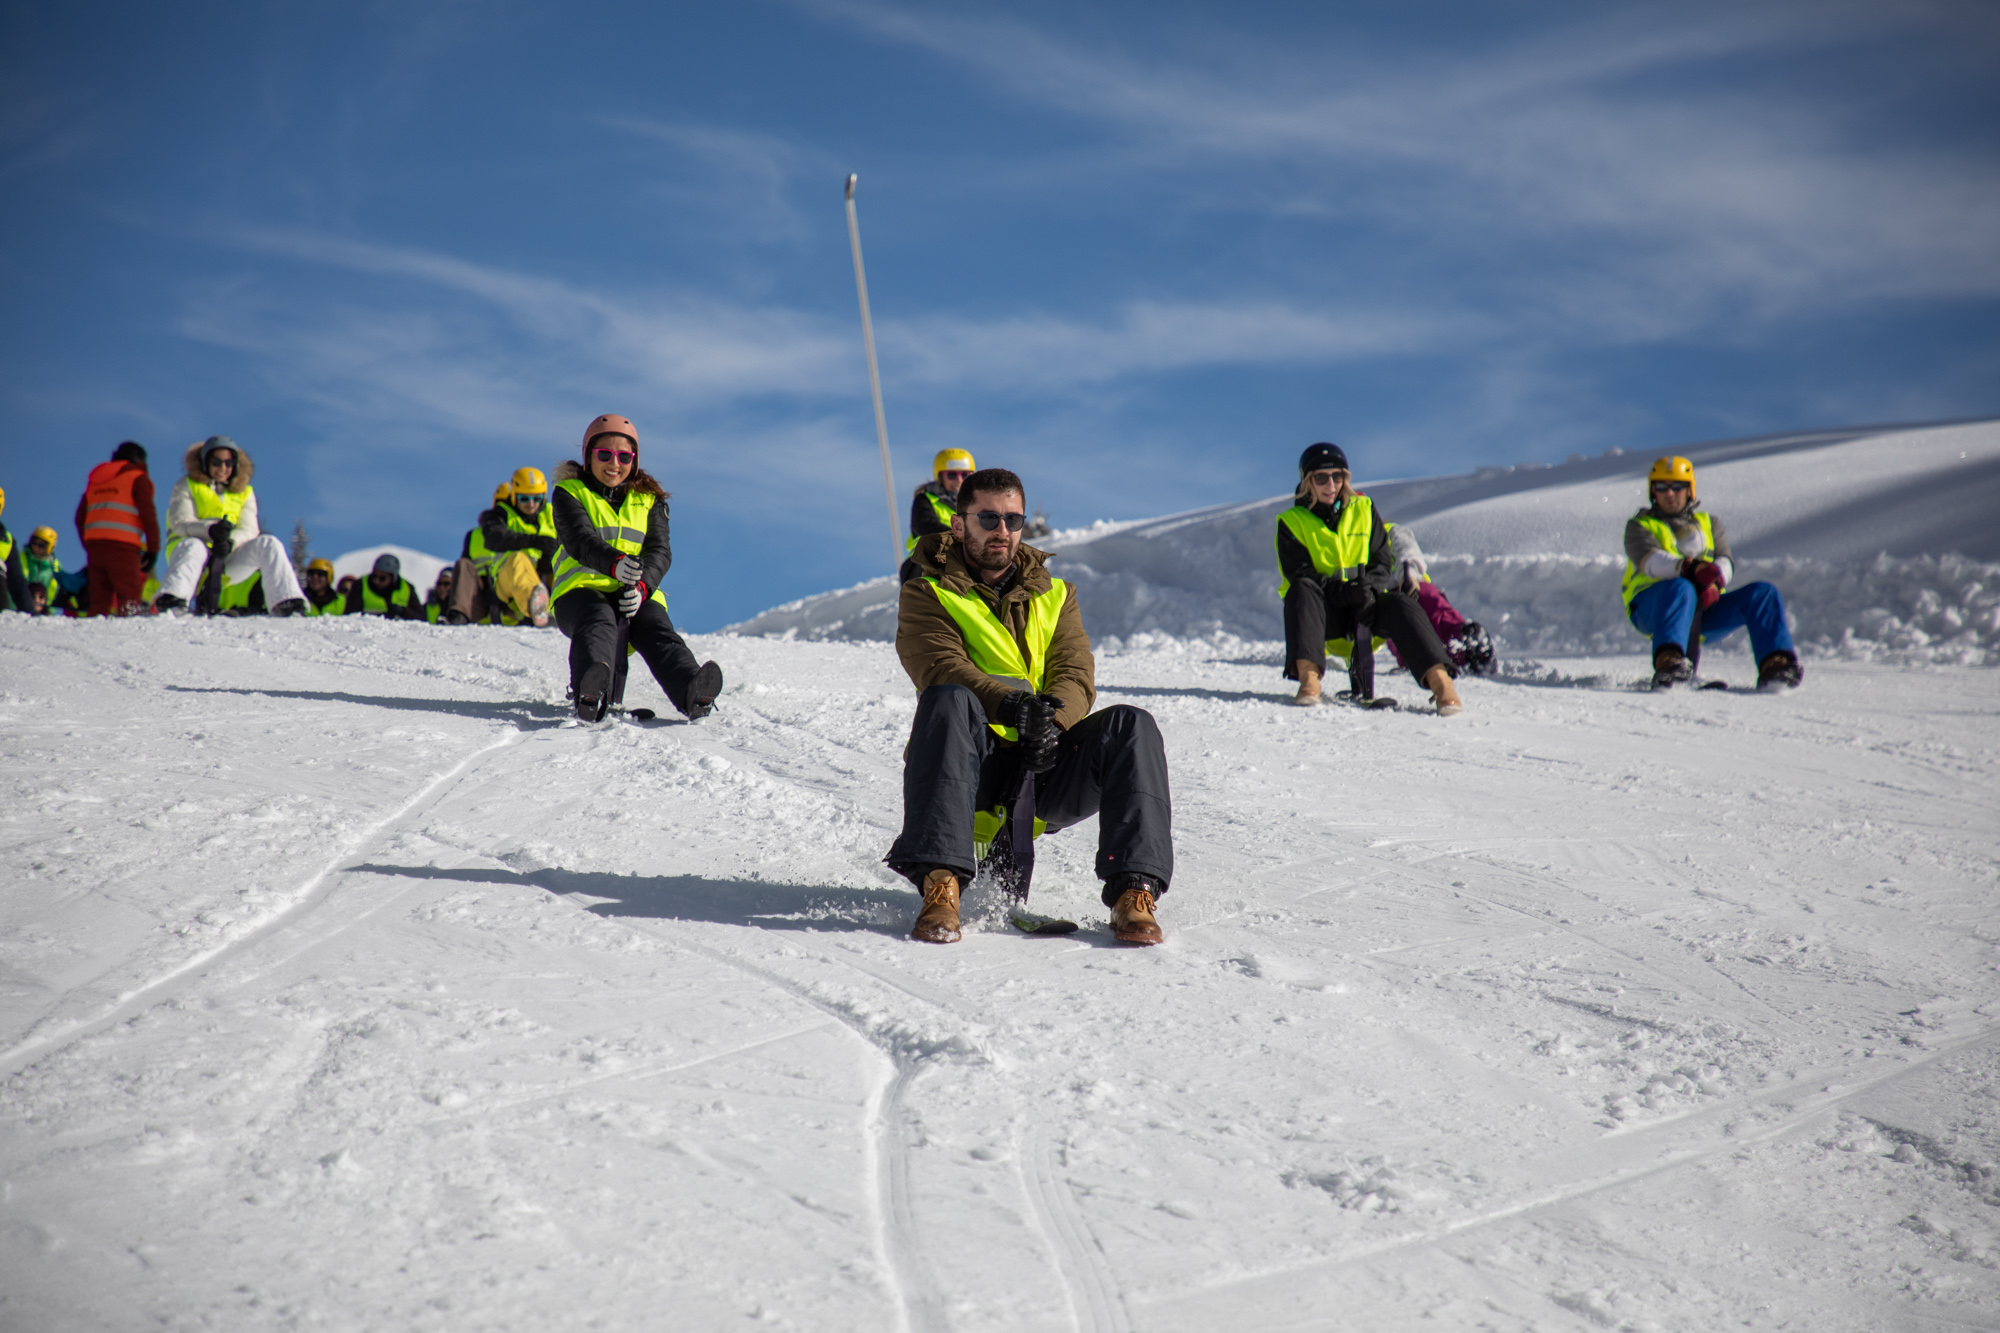 Break_The_Ice_LaClusaz_2019_web-7157.jpg